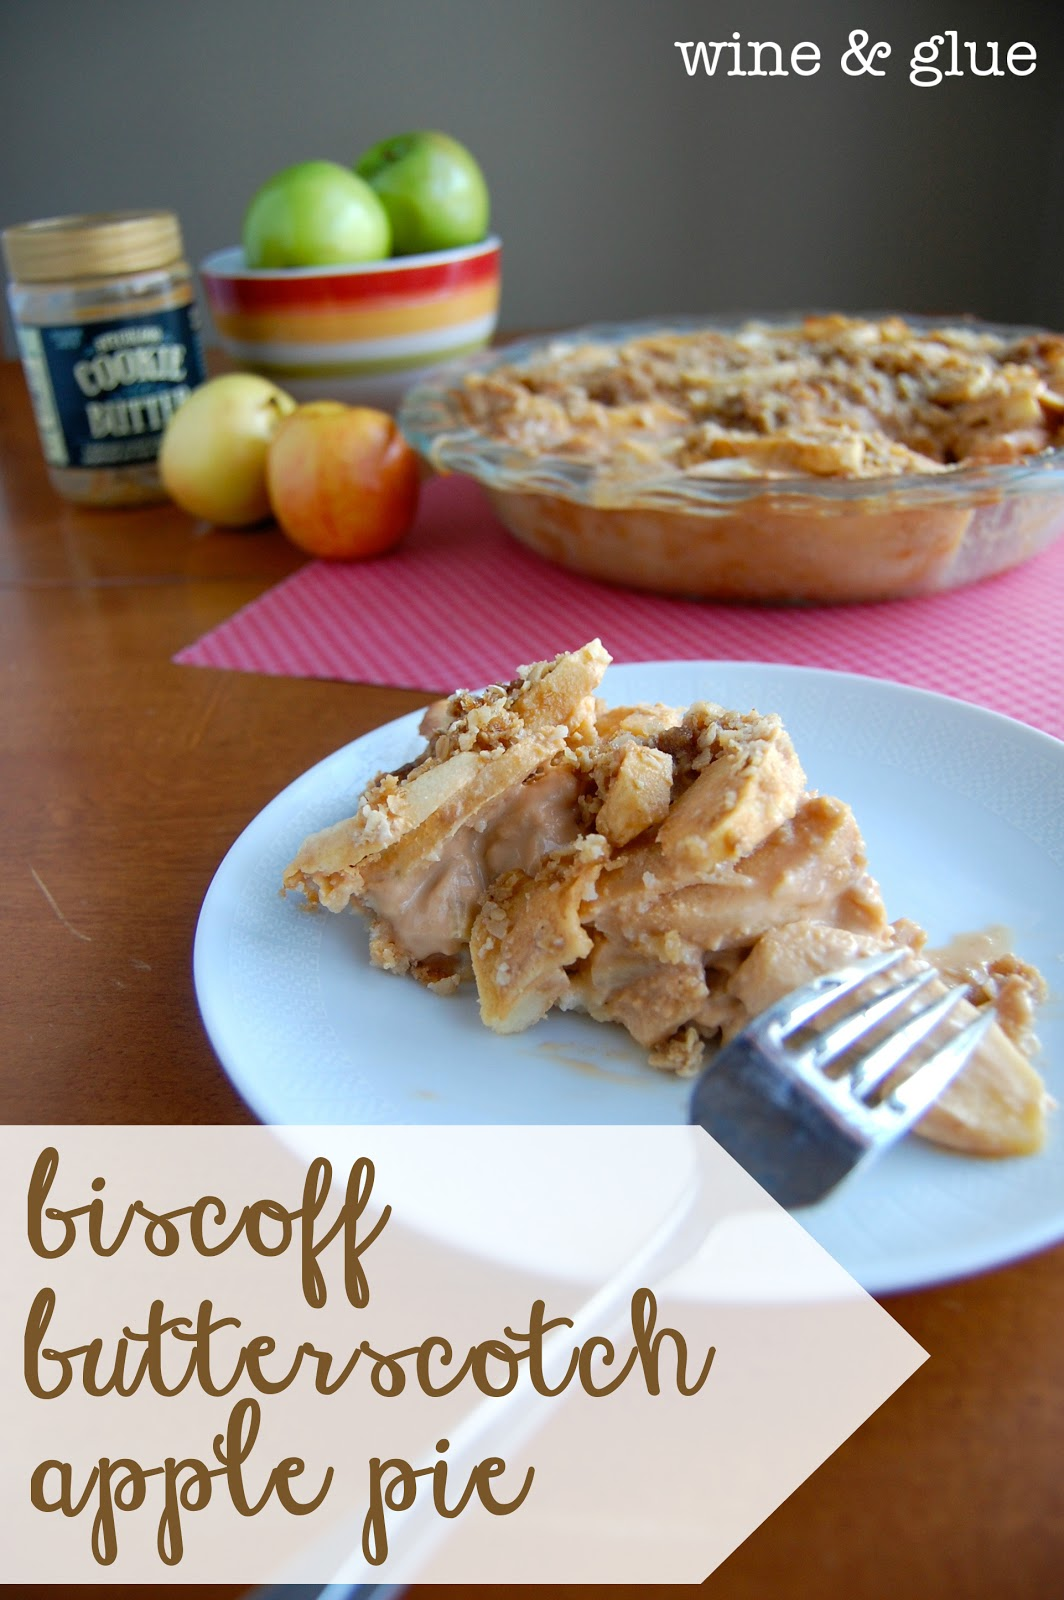 Biscoff Butterscotch Apple Pie With Sugar Cookie Crust